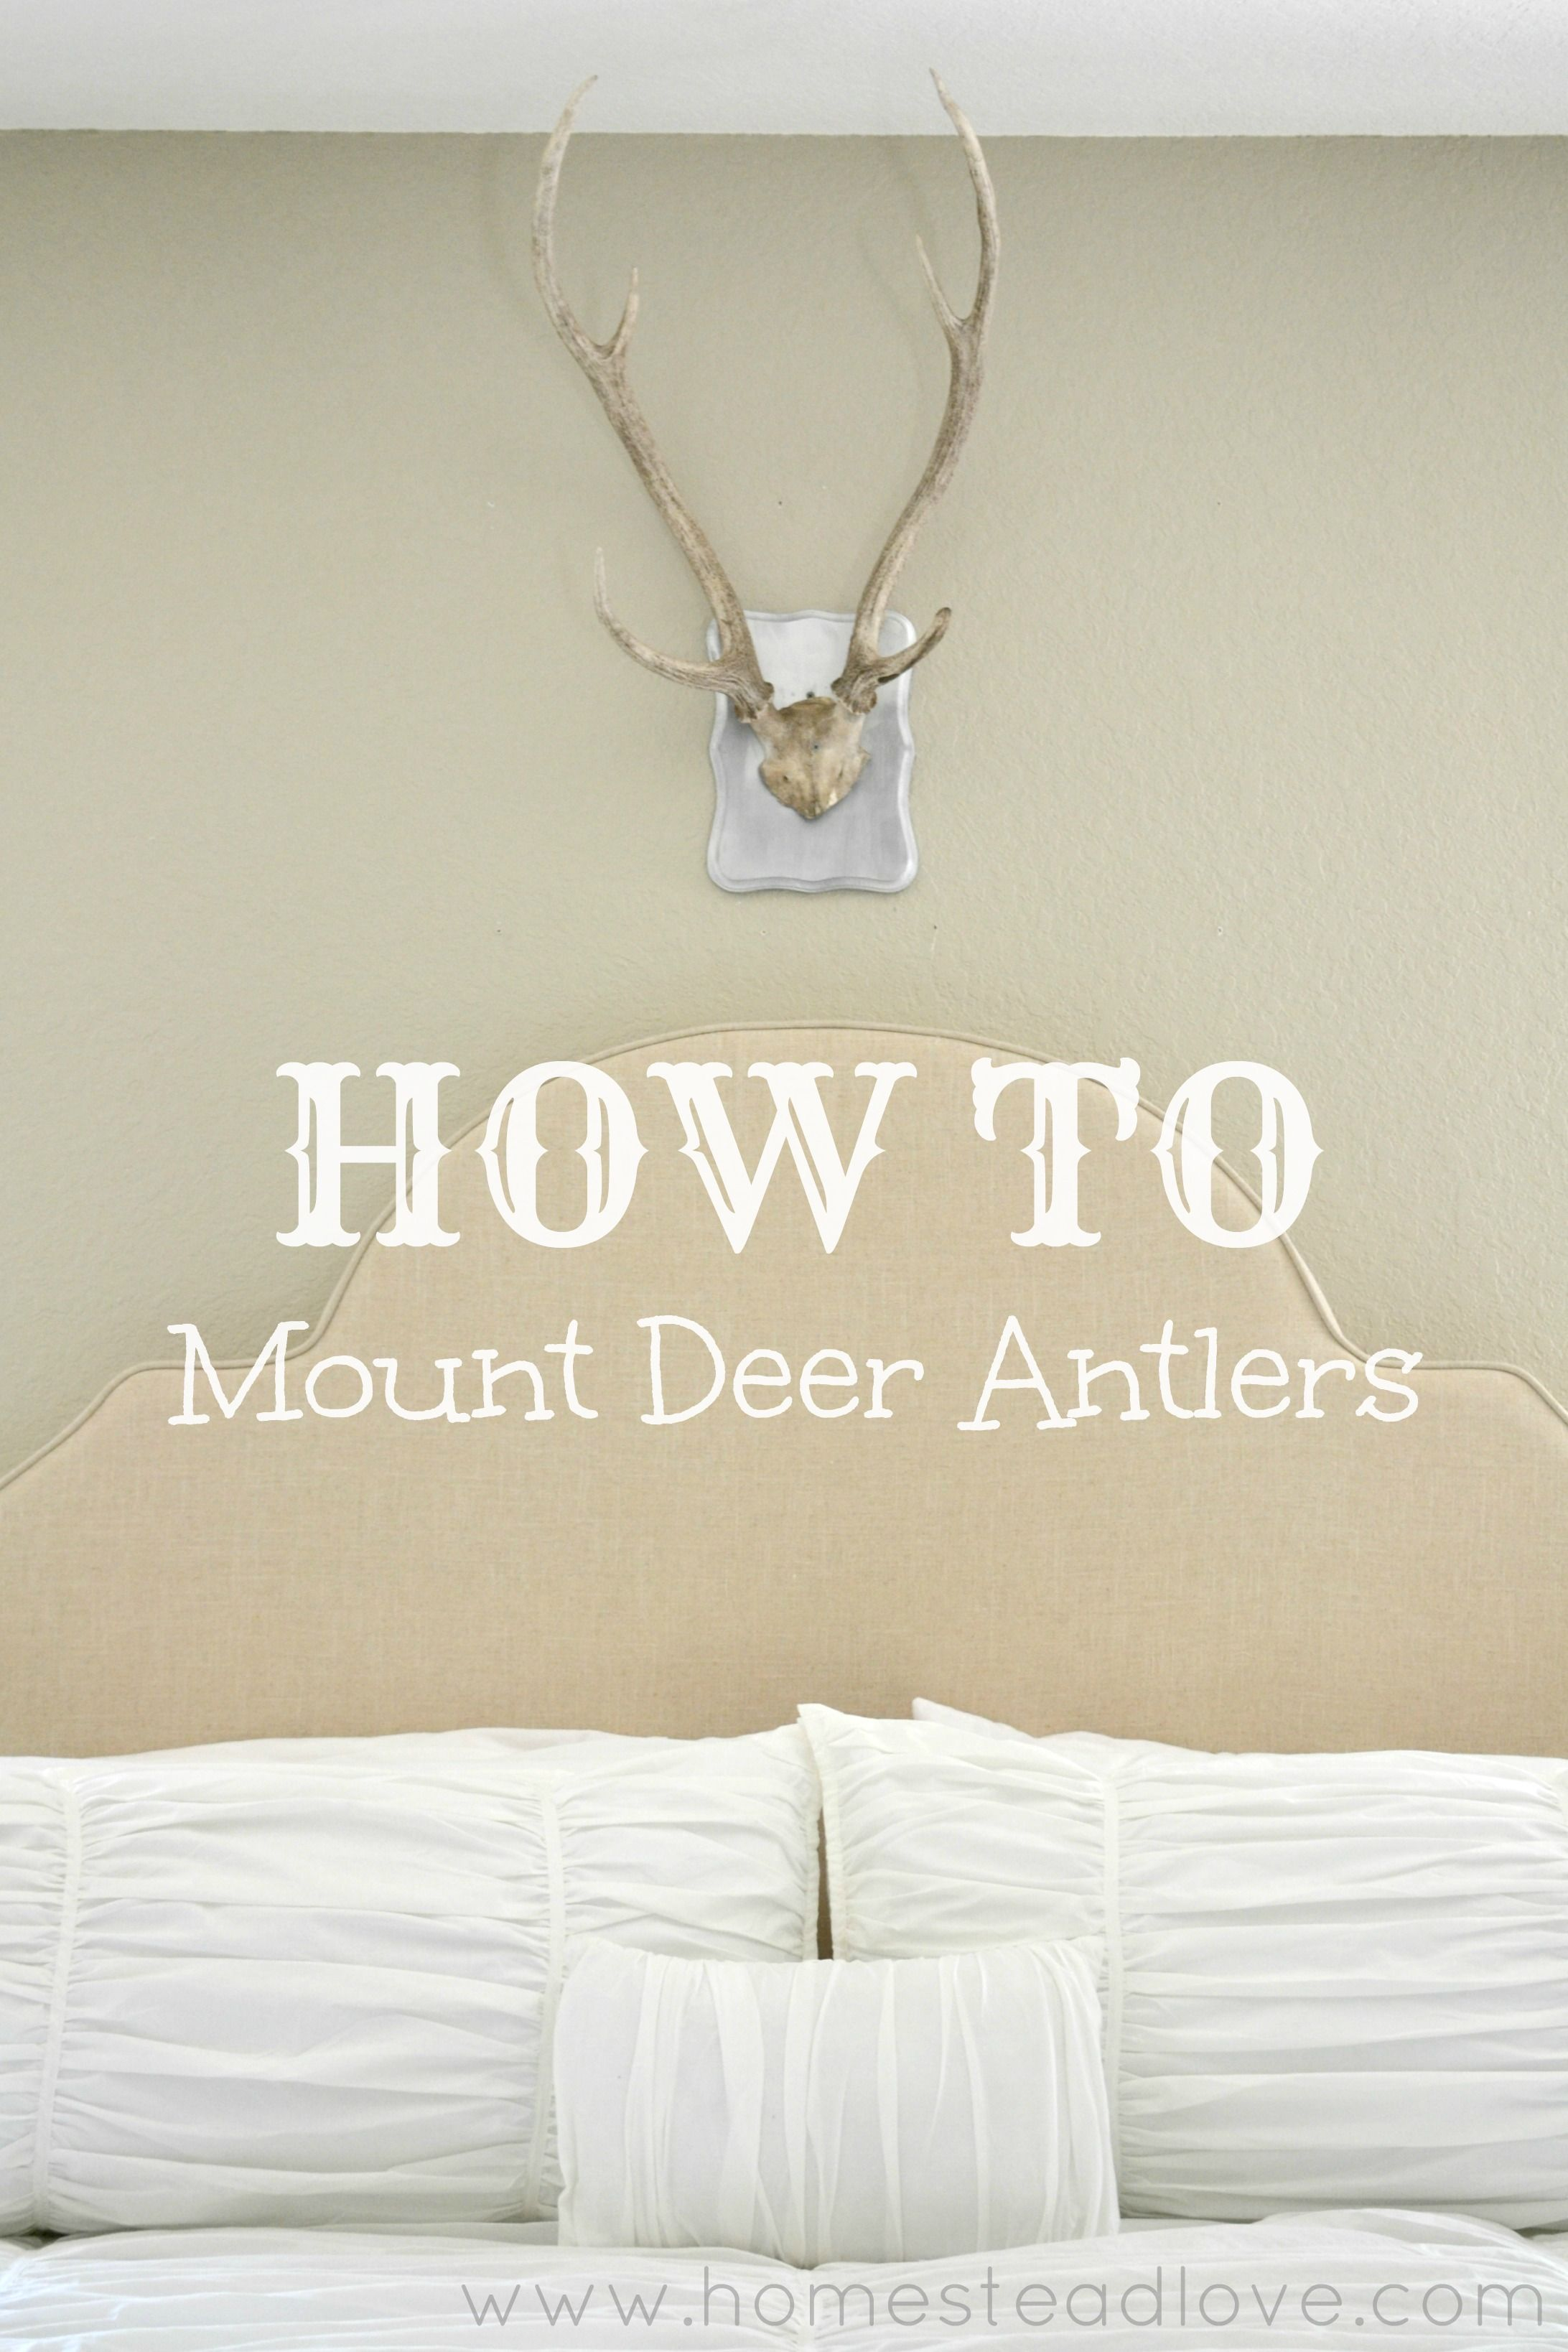 How To Mount Deer Antlers